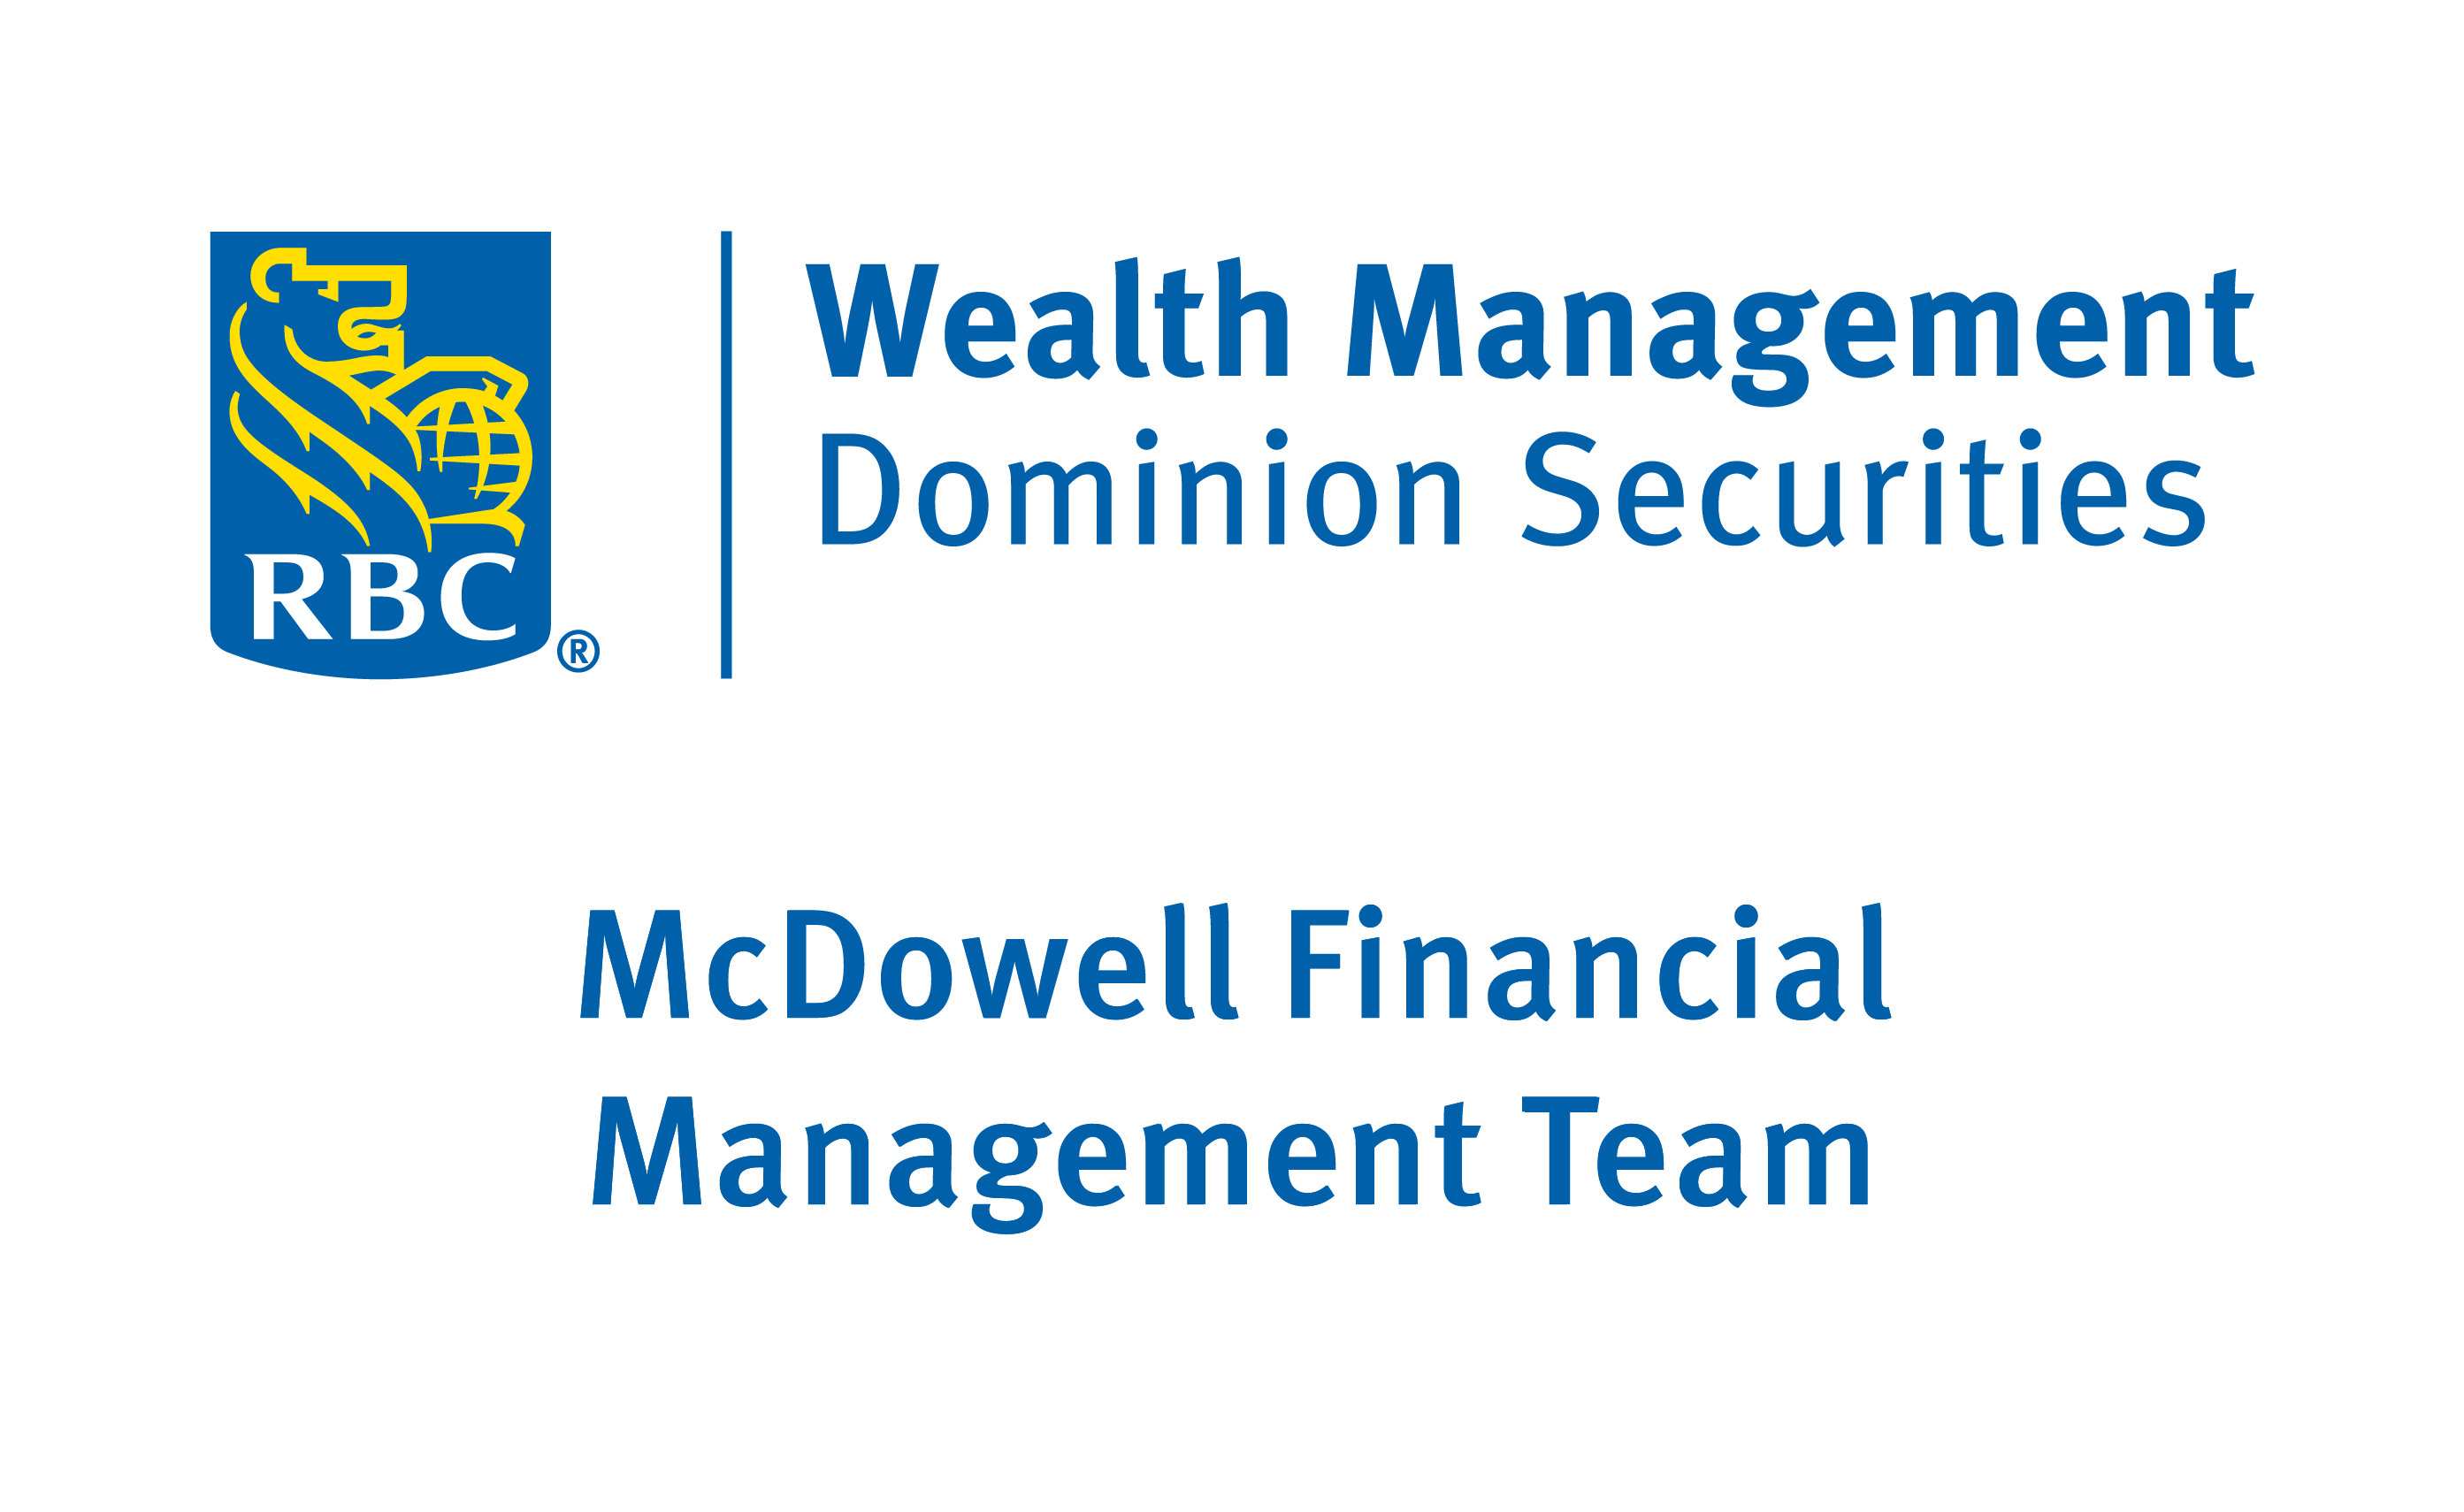 McDowell Financial Wealth Management